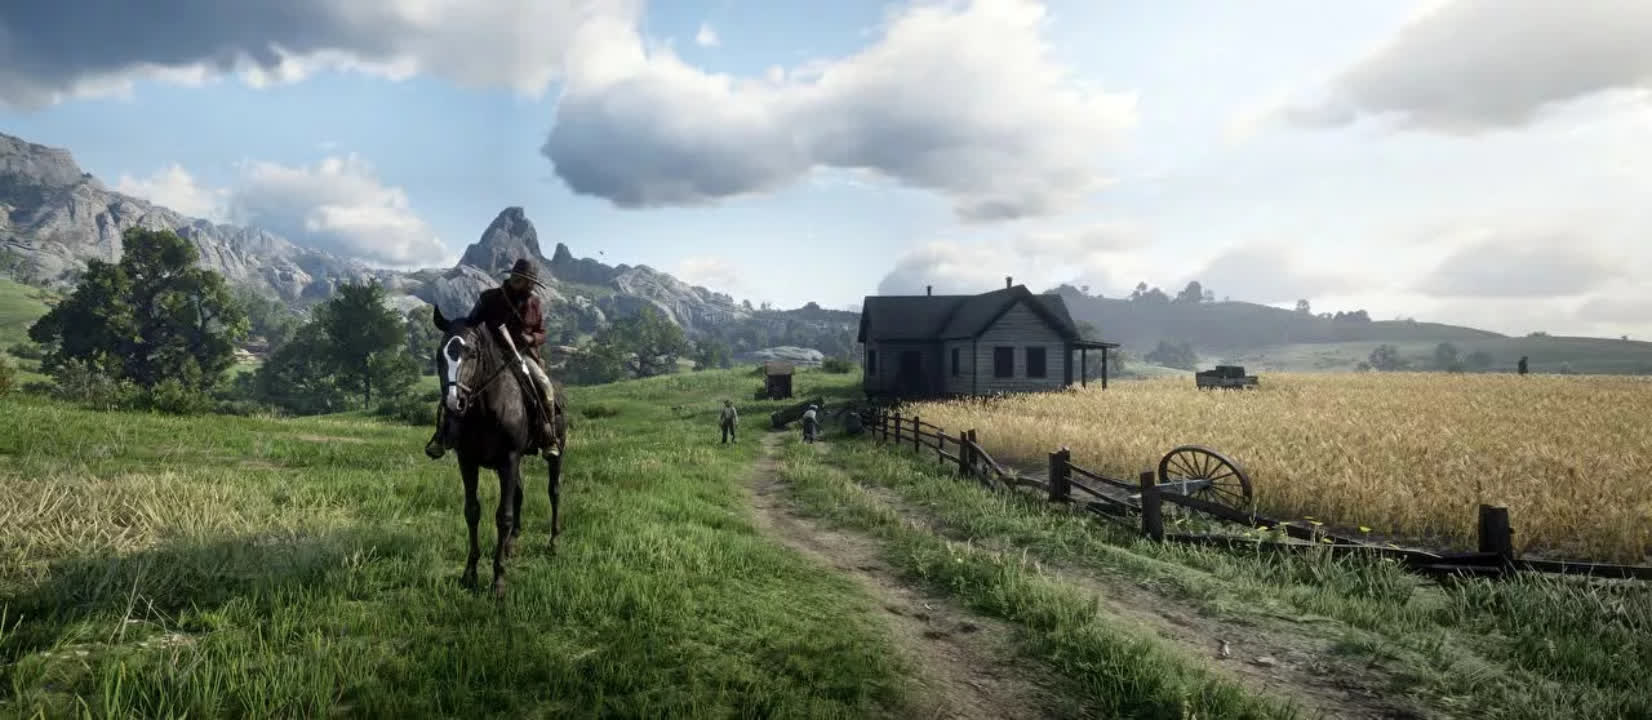 Red Dead Redemption 2 screenshot gets mistaken for the real outdoors in news segment